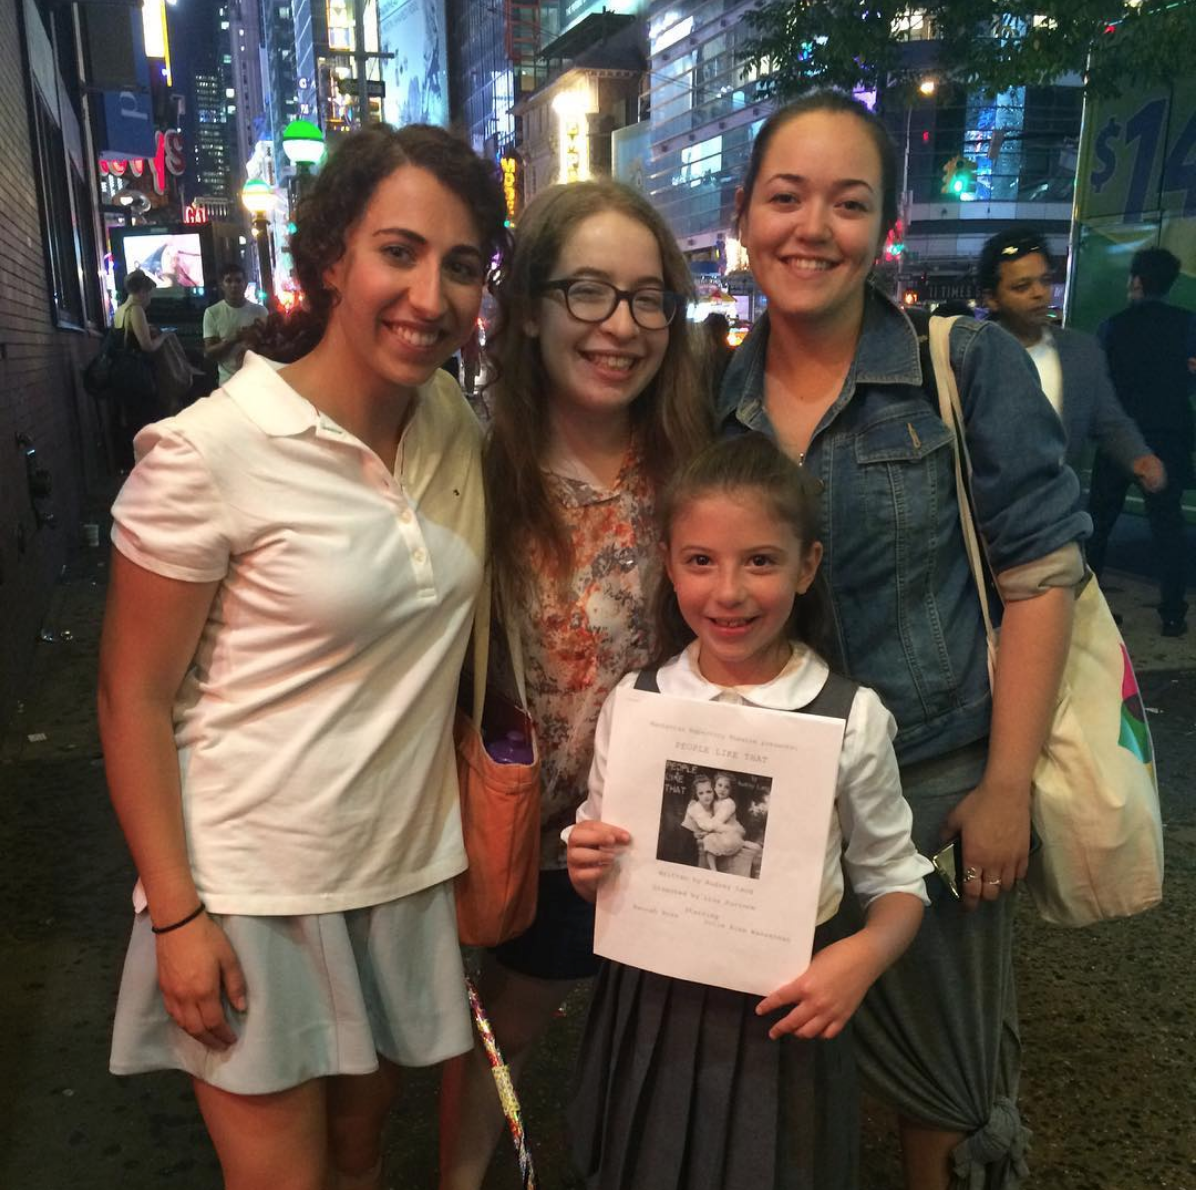 In the streets of Times Square just outside the theatre. From left to right: myself, Audrey, Jolie, and Lisa.